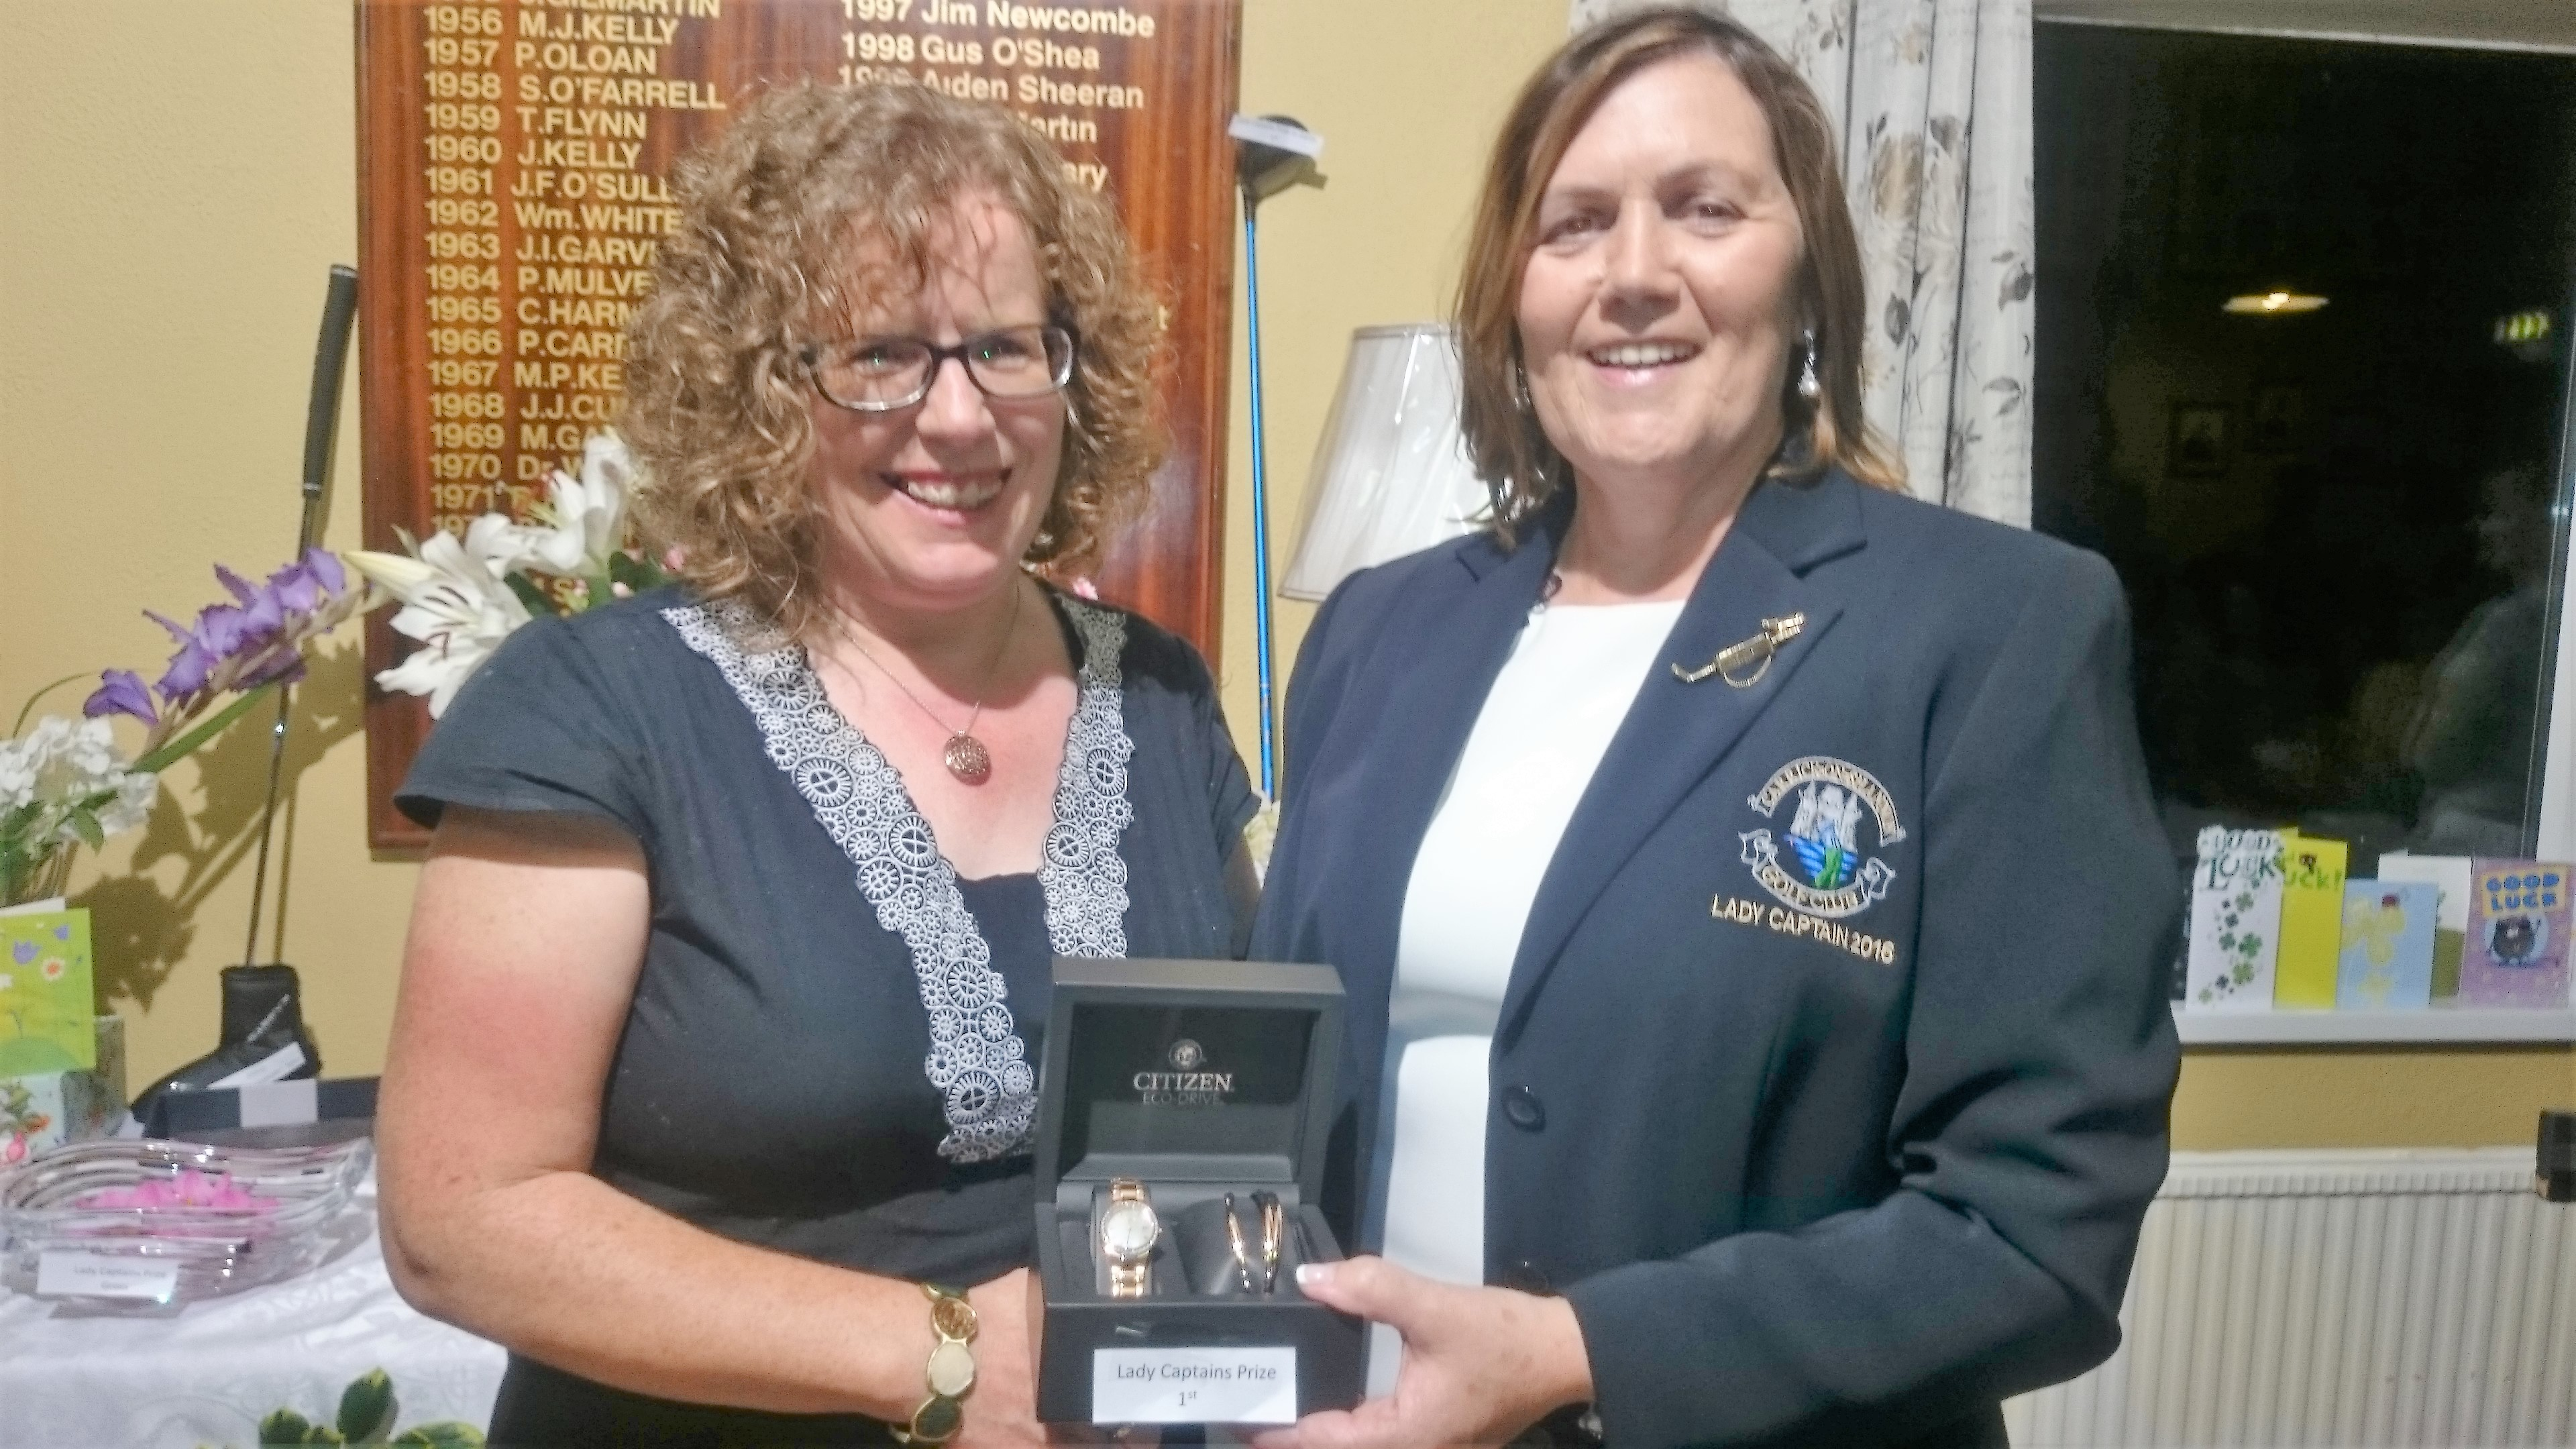 LADY CAPTAINS DAY: Siobhan Talbot(WINNER), Lady Captain Noeleen Moffatt